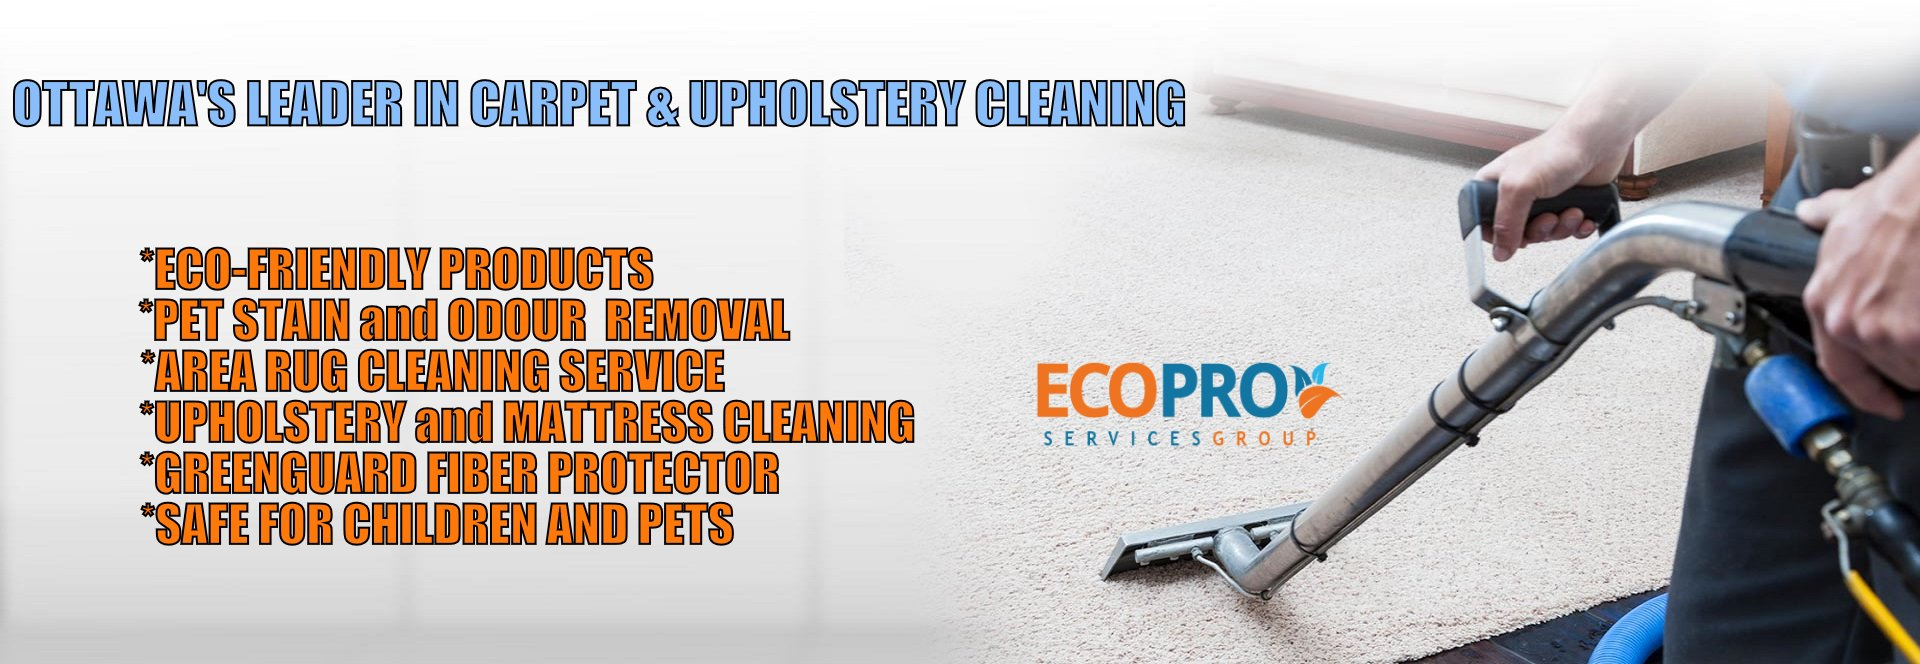 Ottawa Carpet Cleaning Services